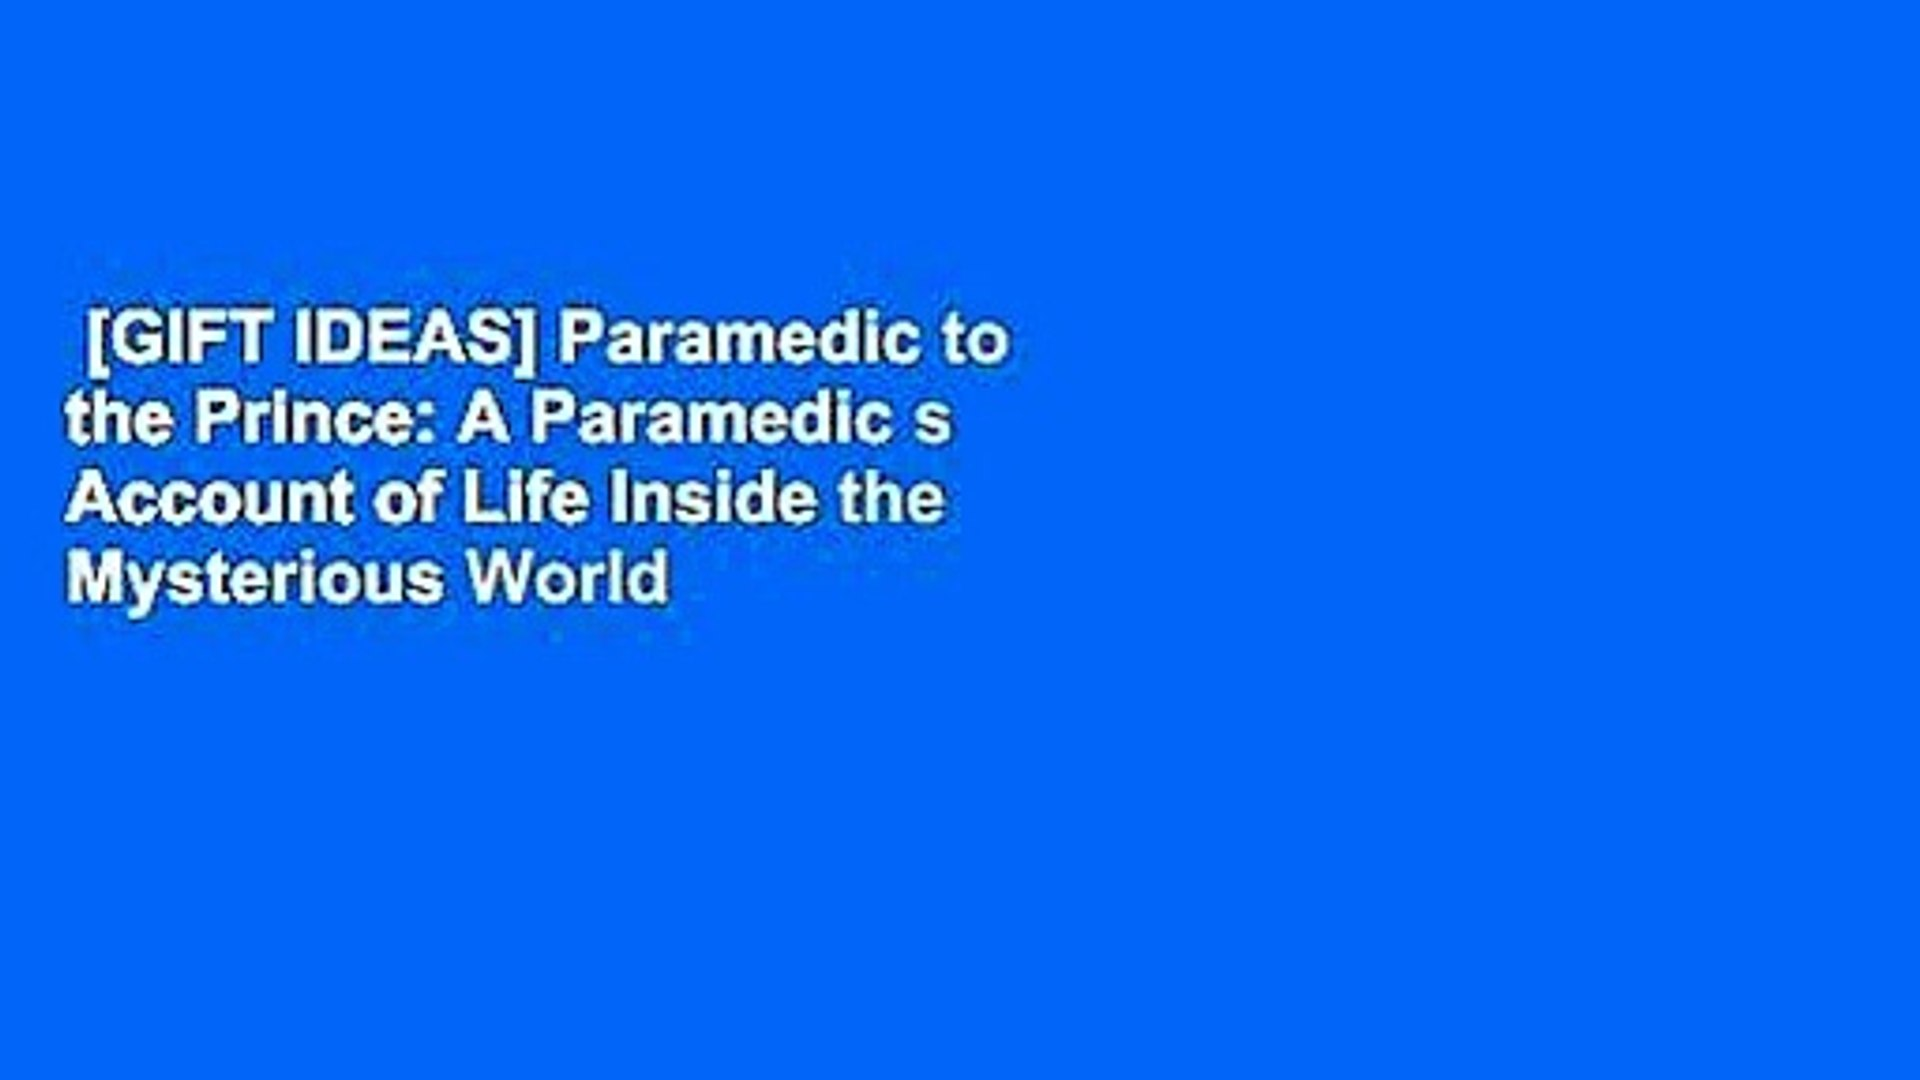 Gift Ideas Paramedic To The Prince A Paramedic S Account Of Life Inside The Mysterious World